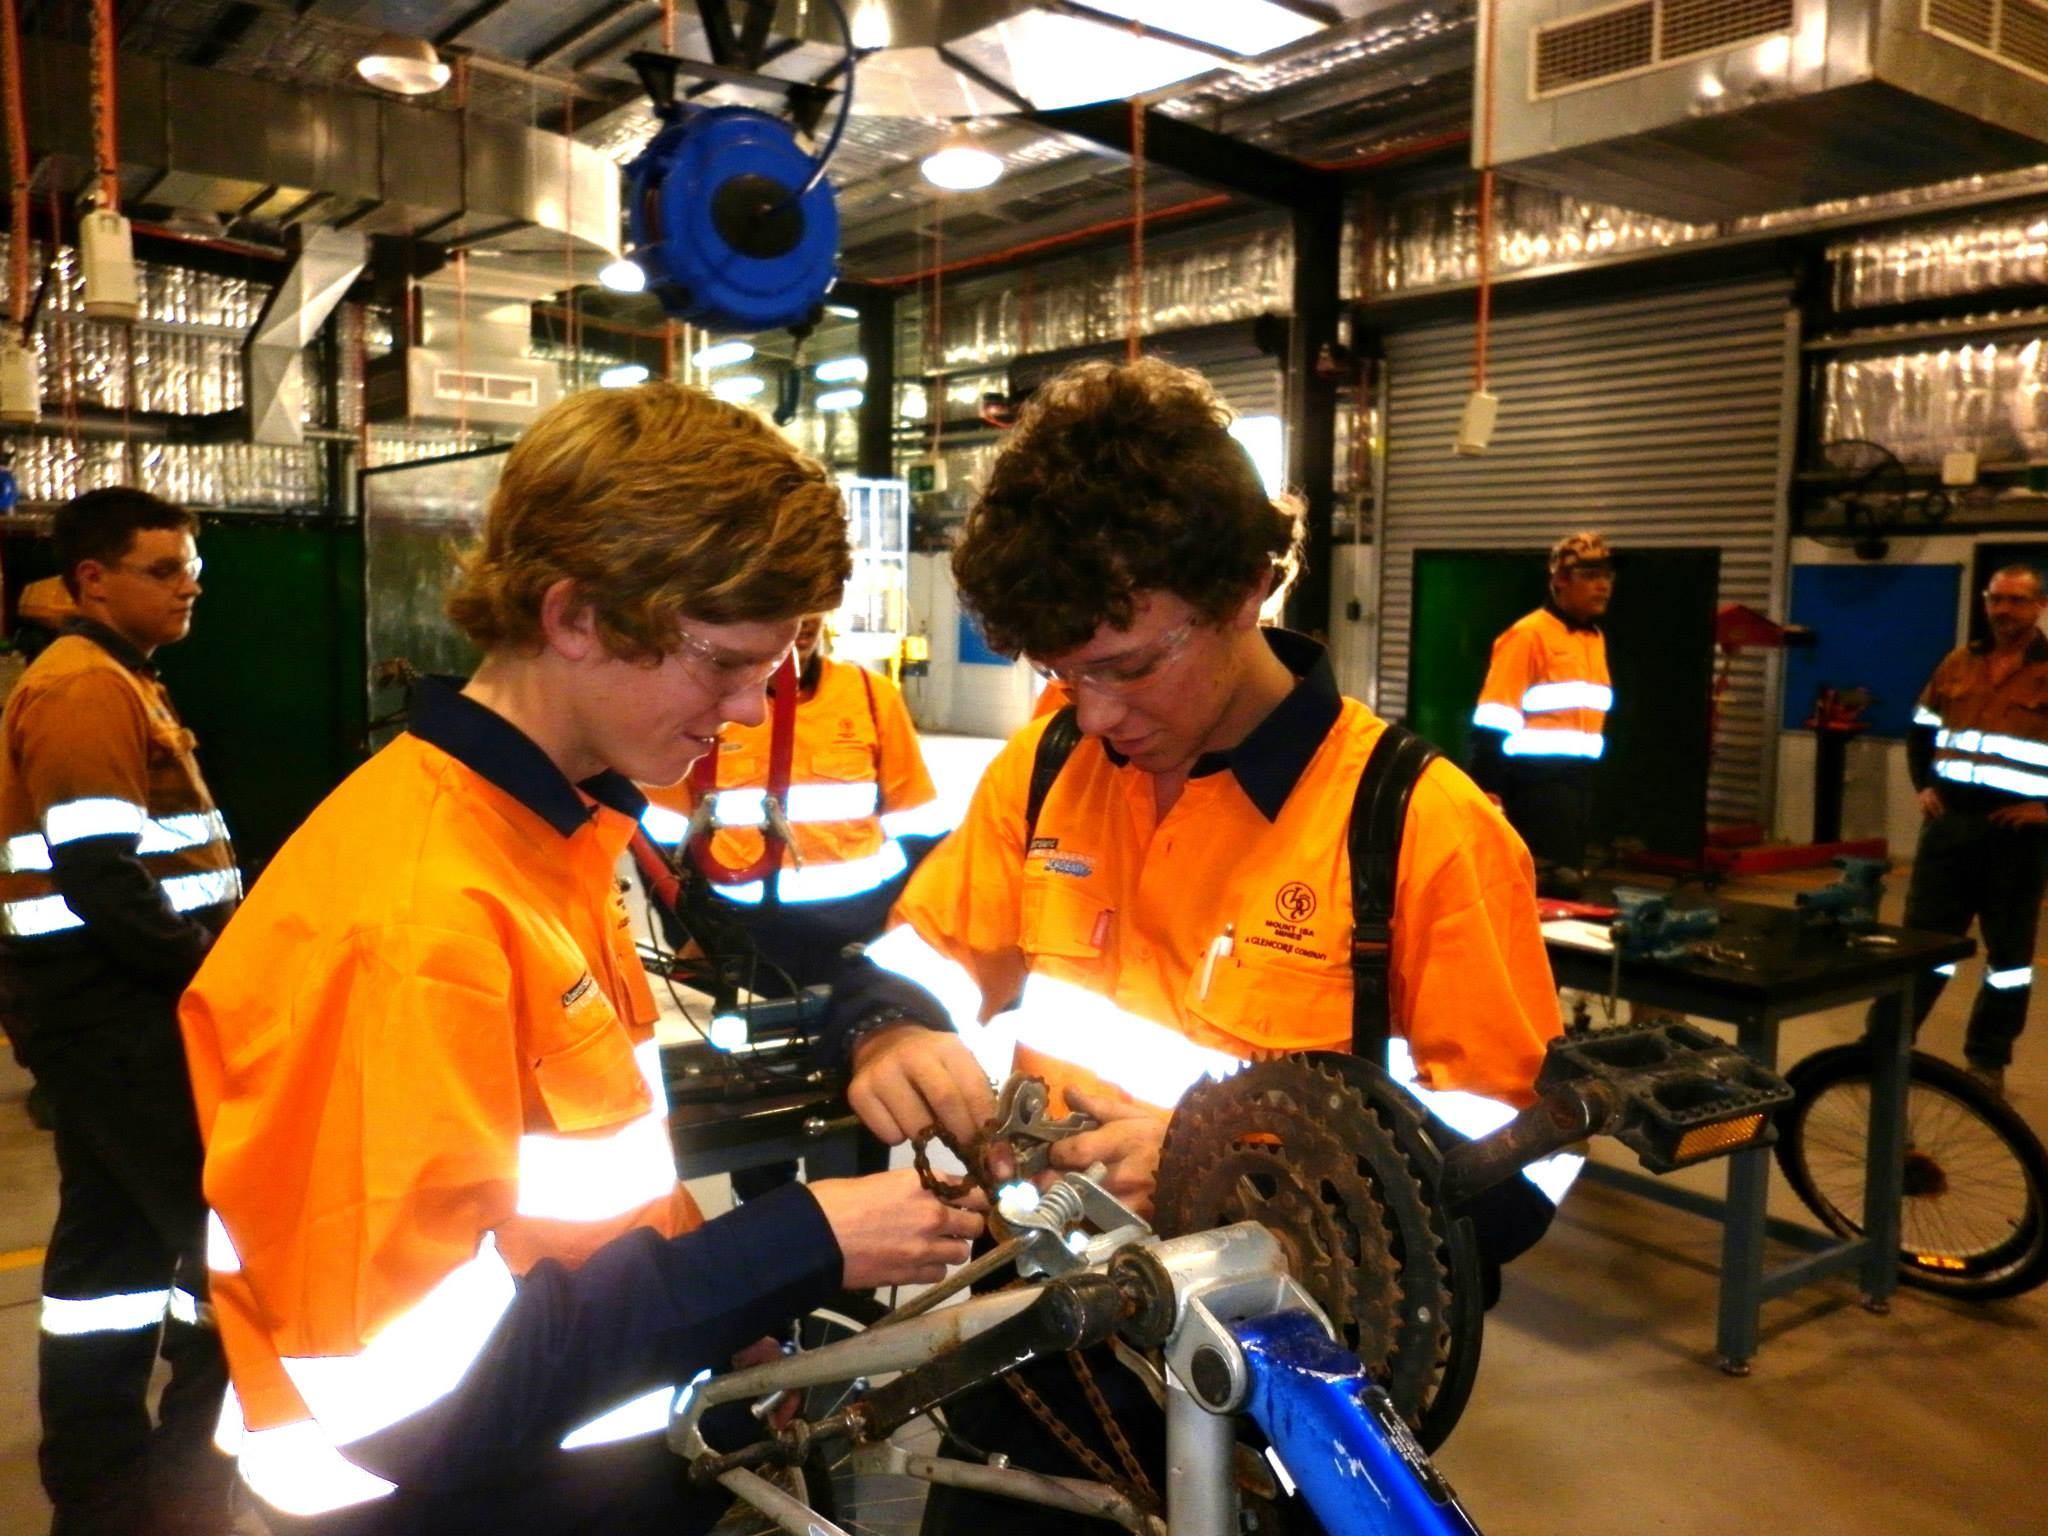 Glencore inspires students to build a career in the mining and resources sector